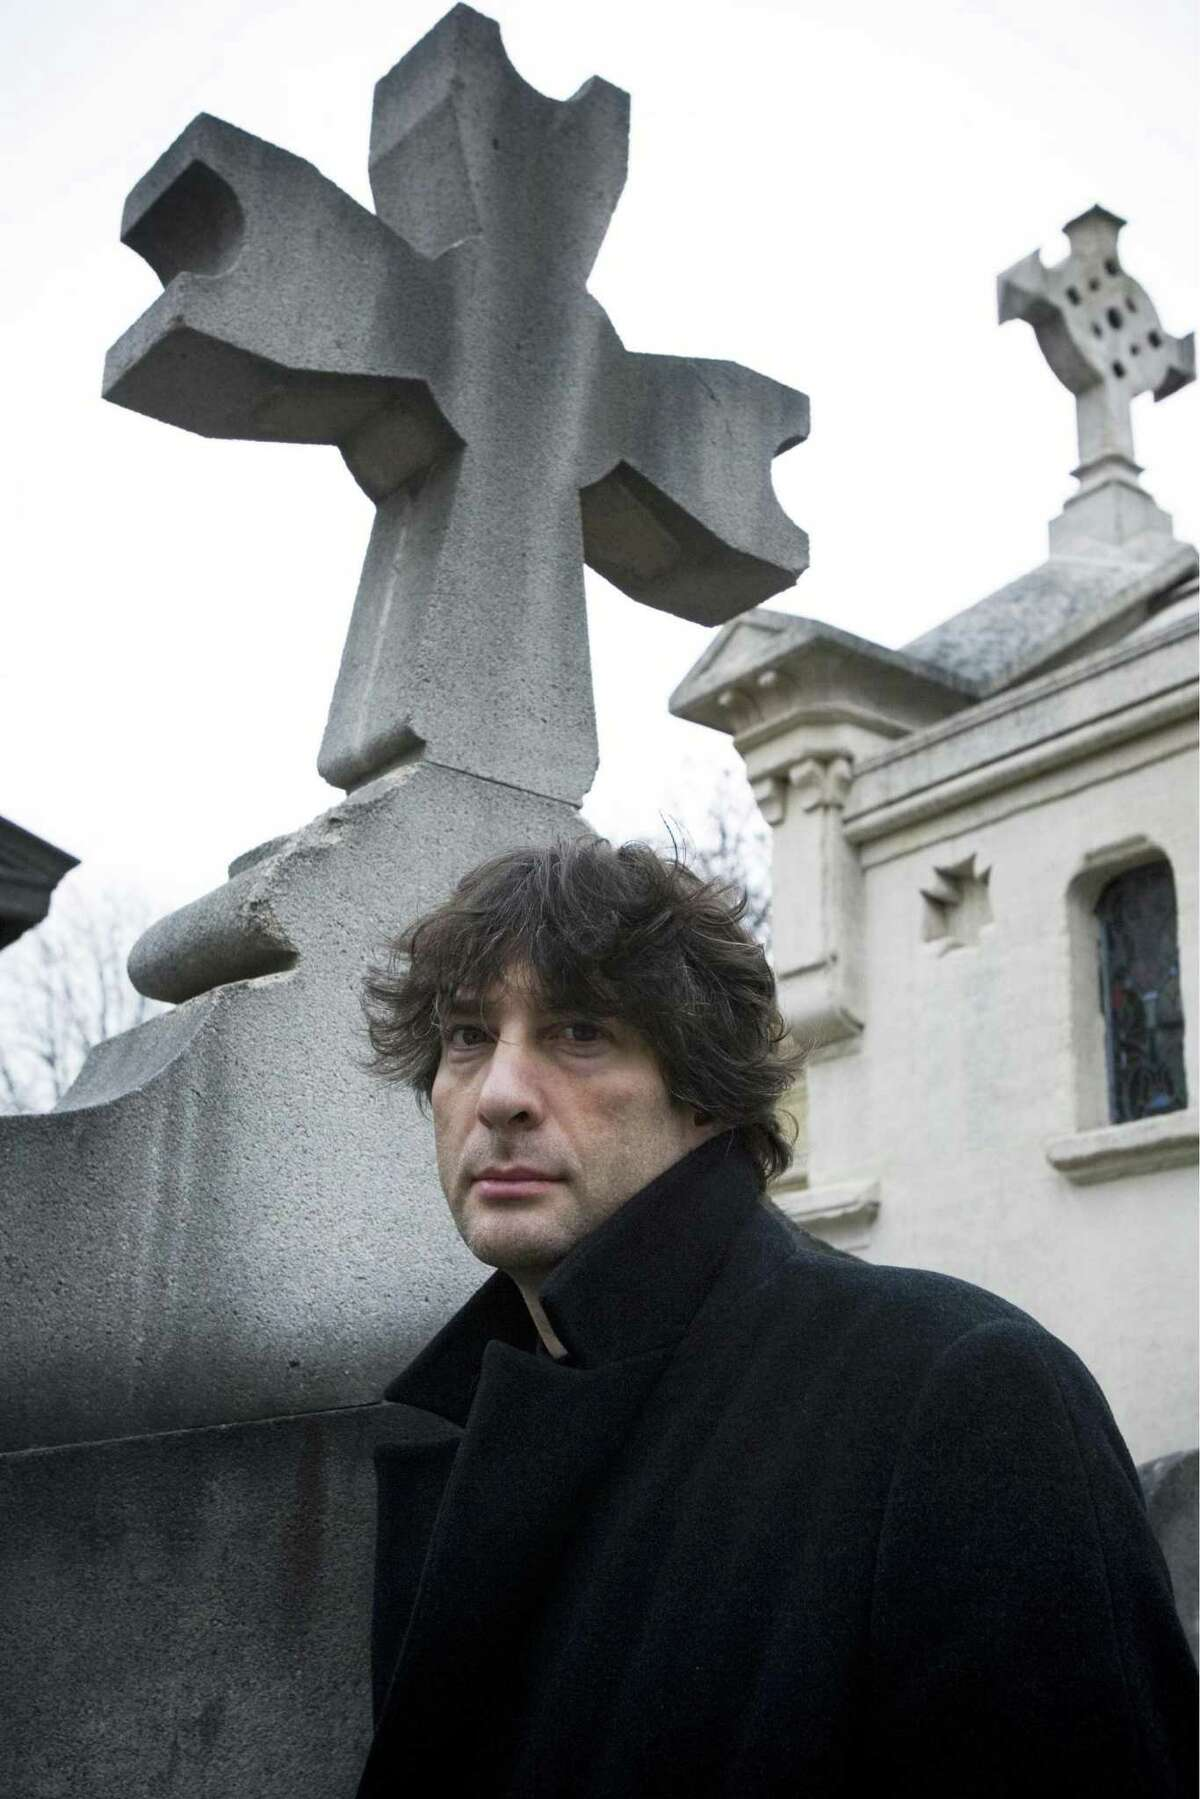 In this undated photo released by HarperCollins, Neil Gaiman, author of